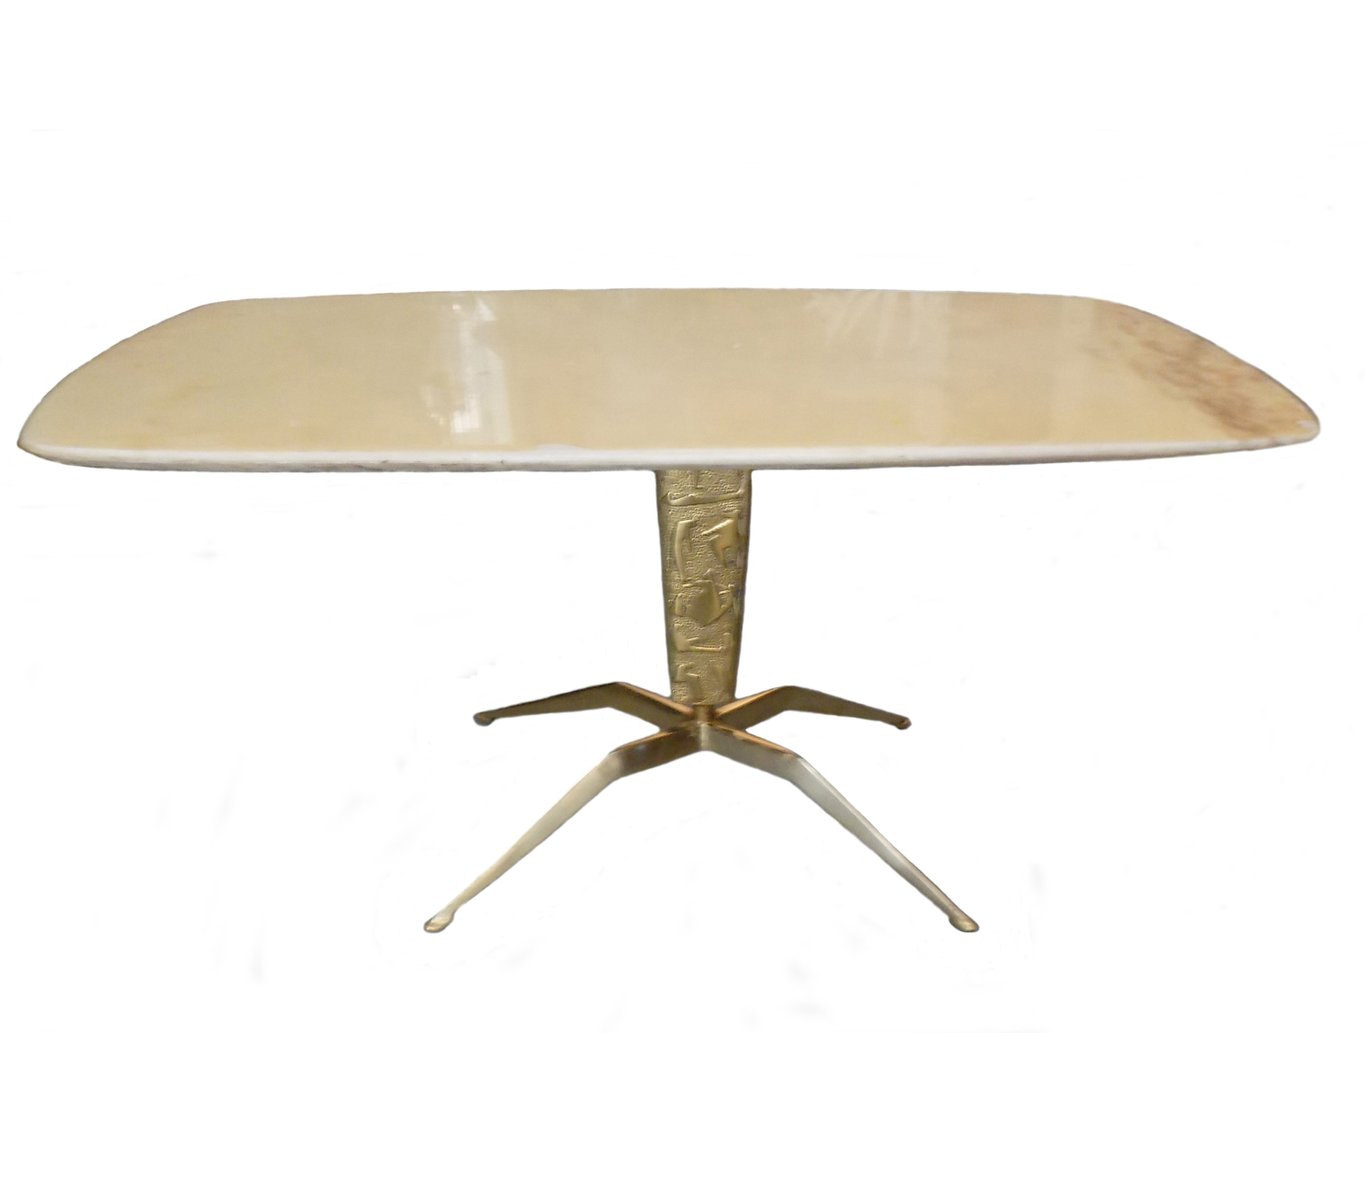 Marble Coffee Table Australia: Golden Brass & Marble Coffee Table, 1950s For Sale At Pamono